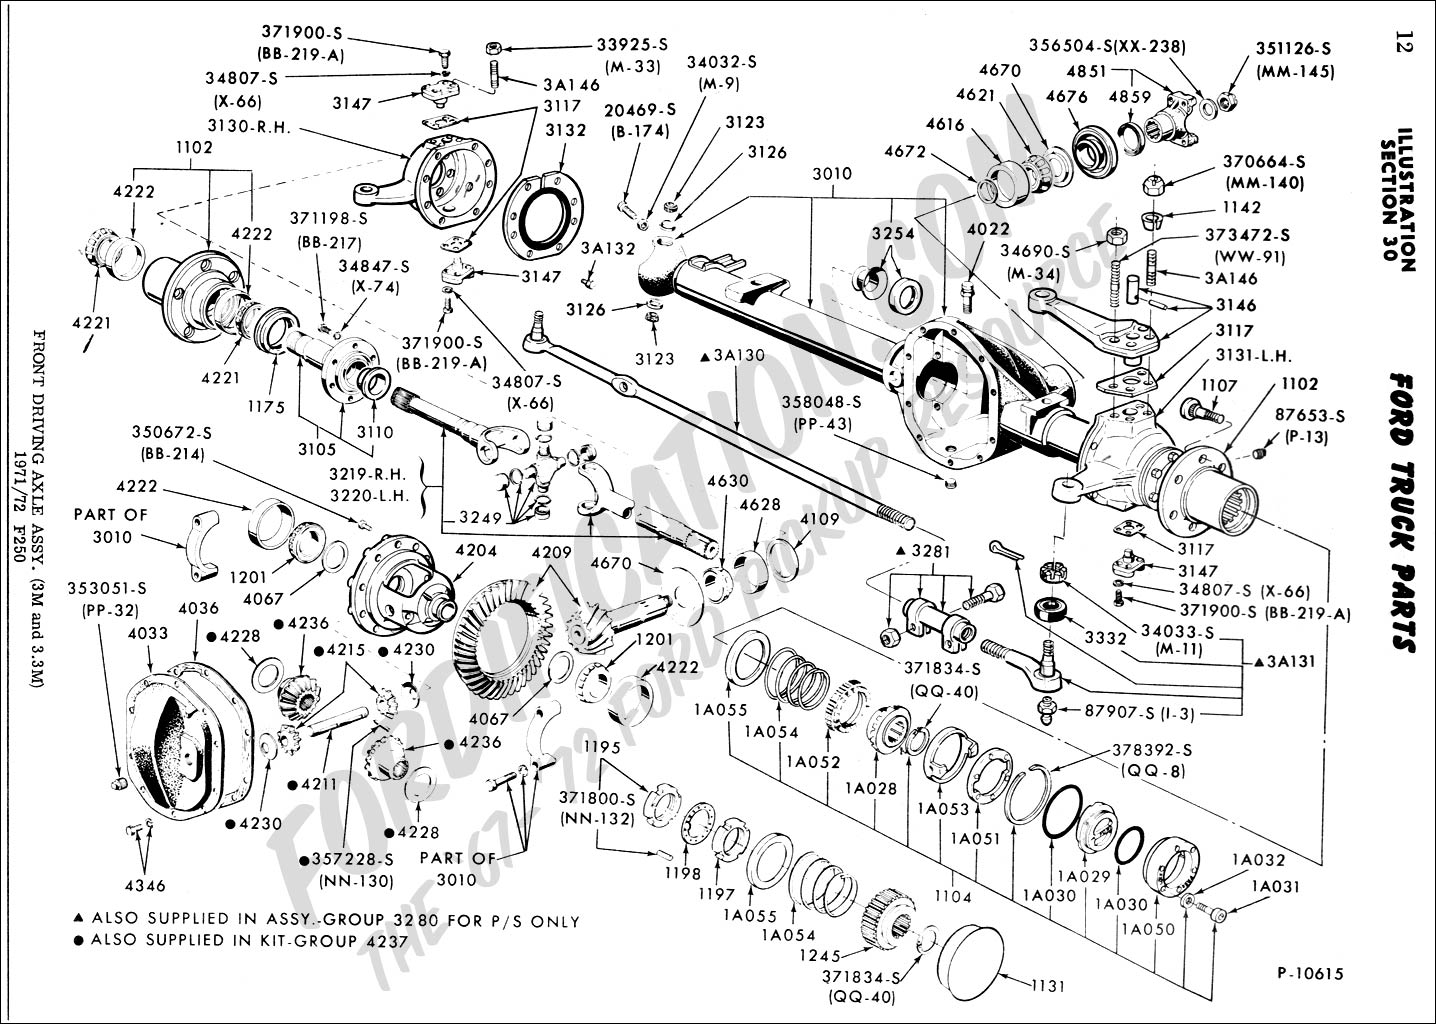 2003 f250 front suspension diagram